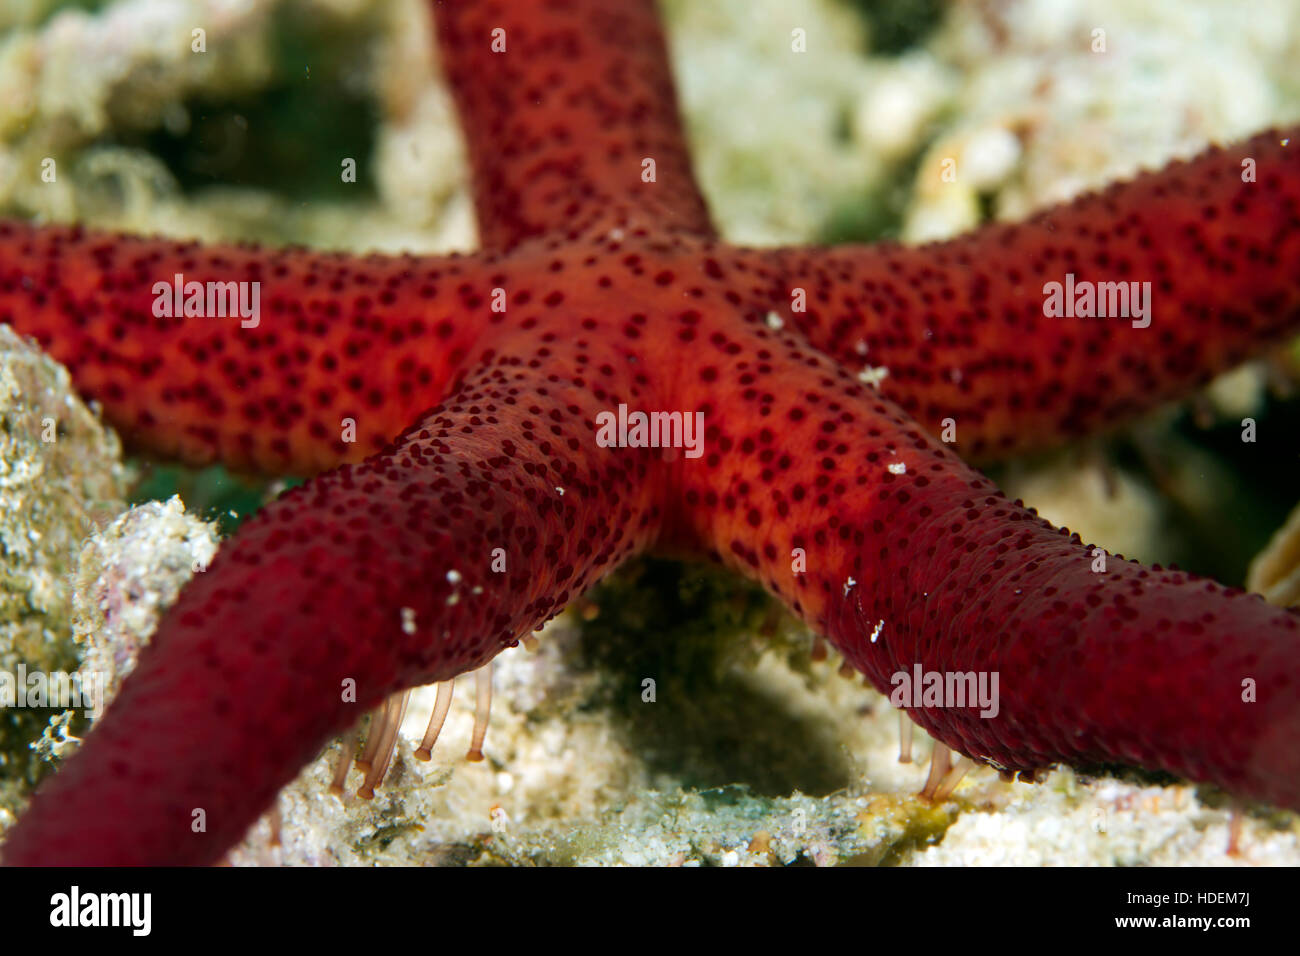 UNderwater macro photography. A red starfish with tube feet visible. - Stock Image